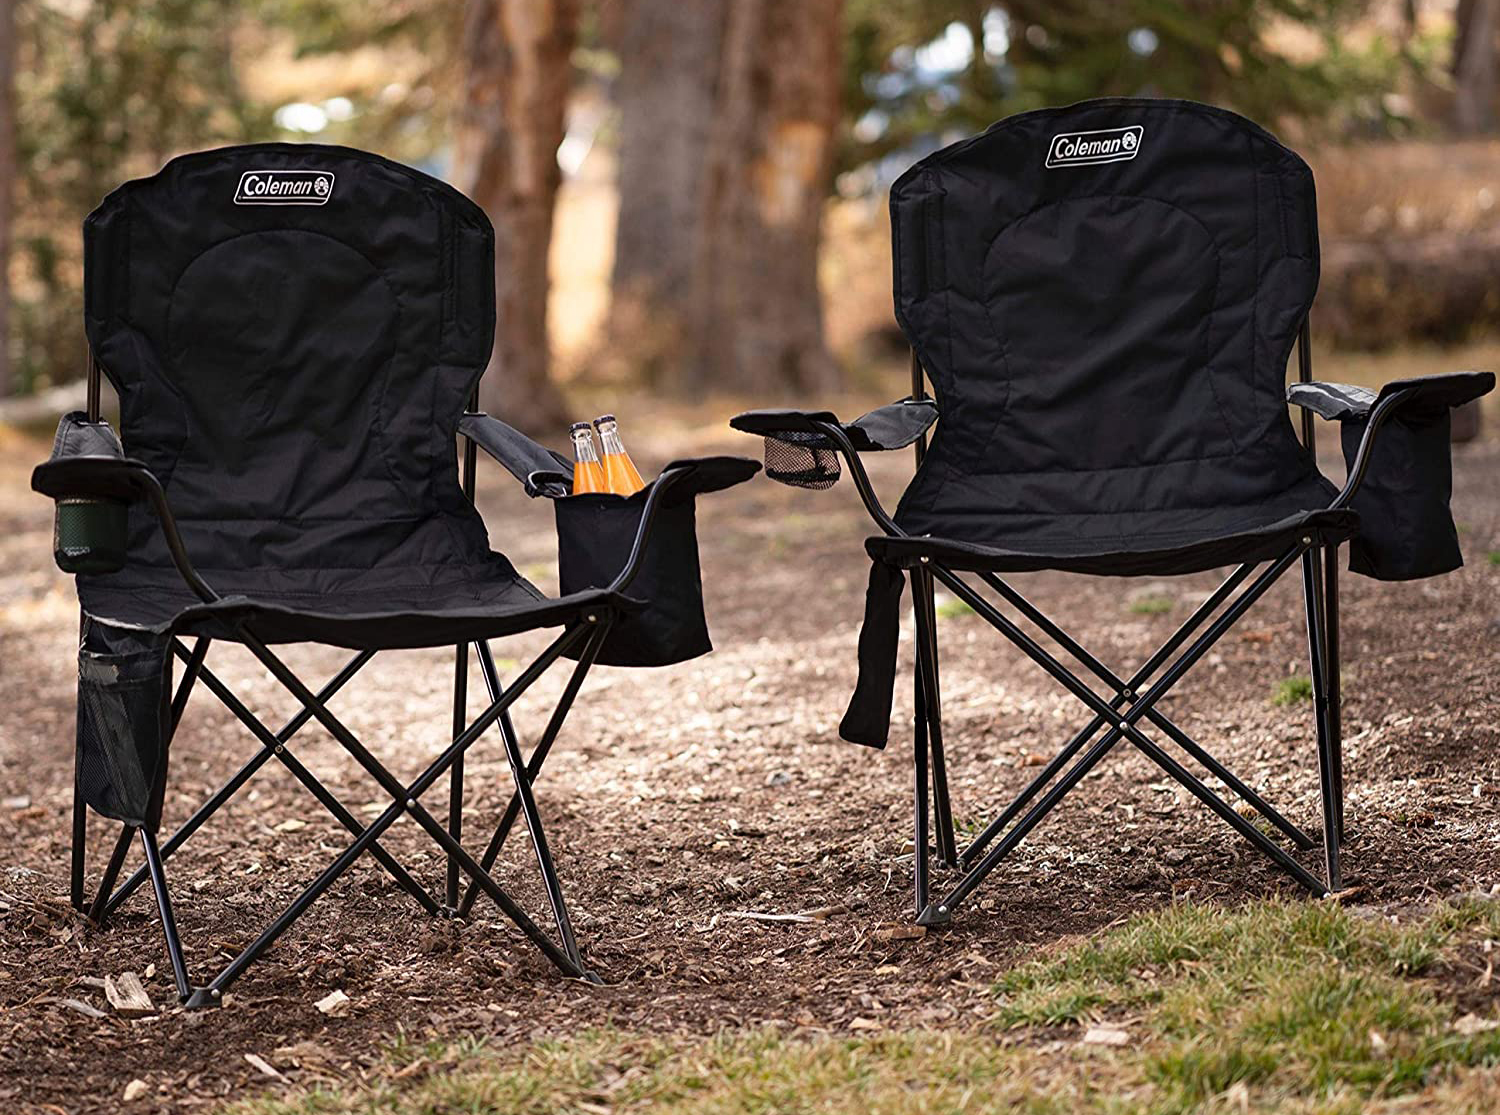 Black Coleman Chairs